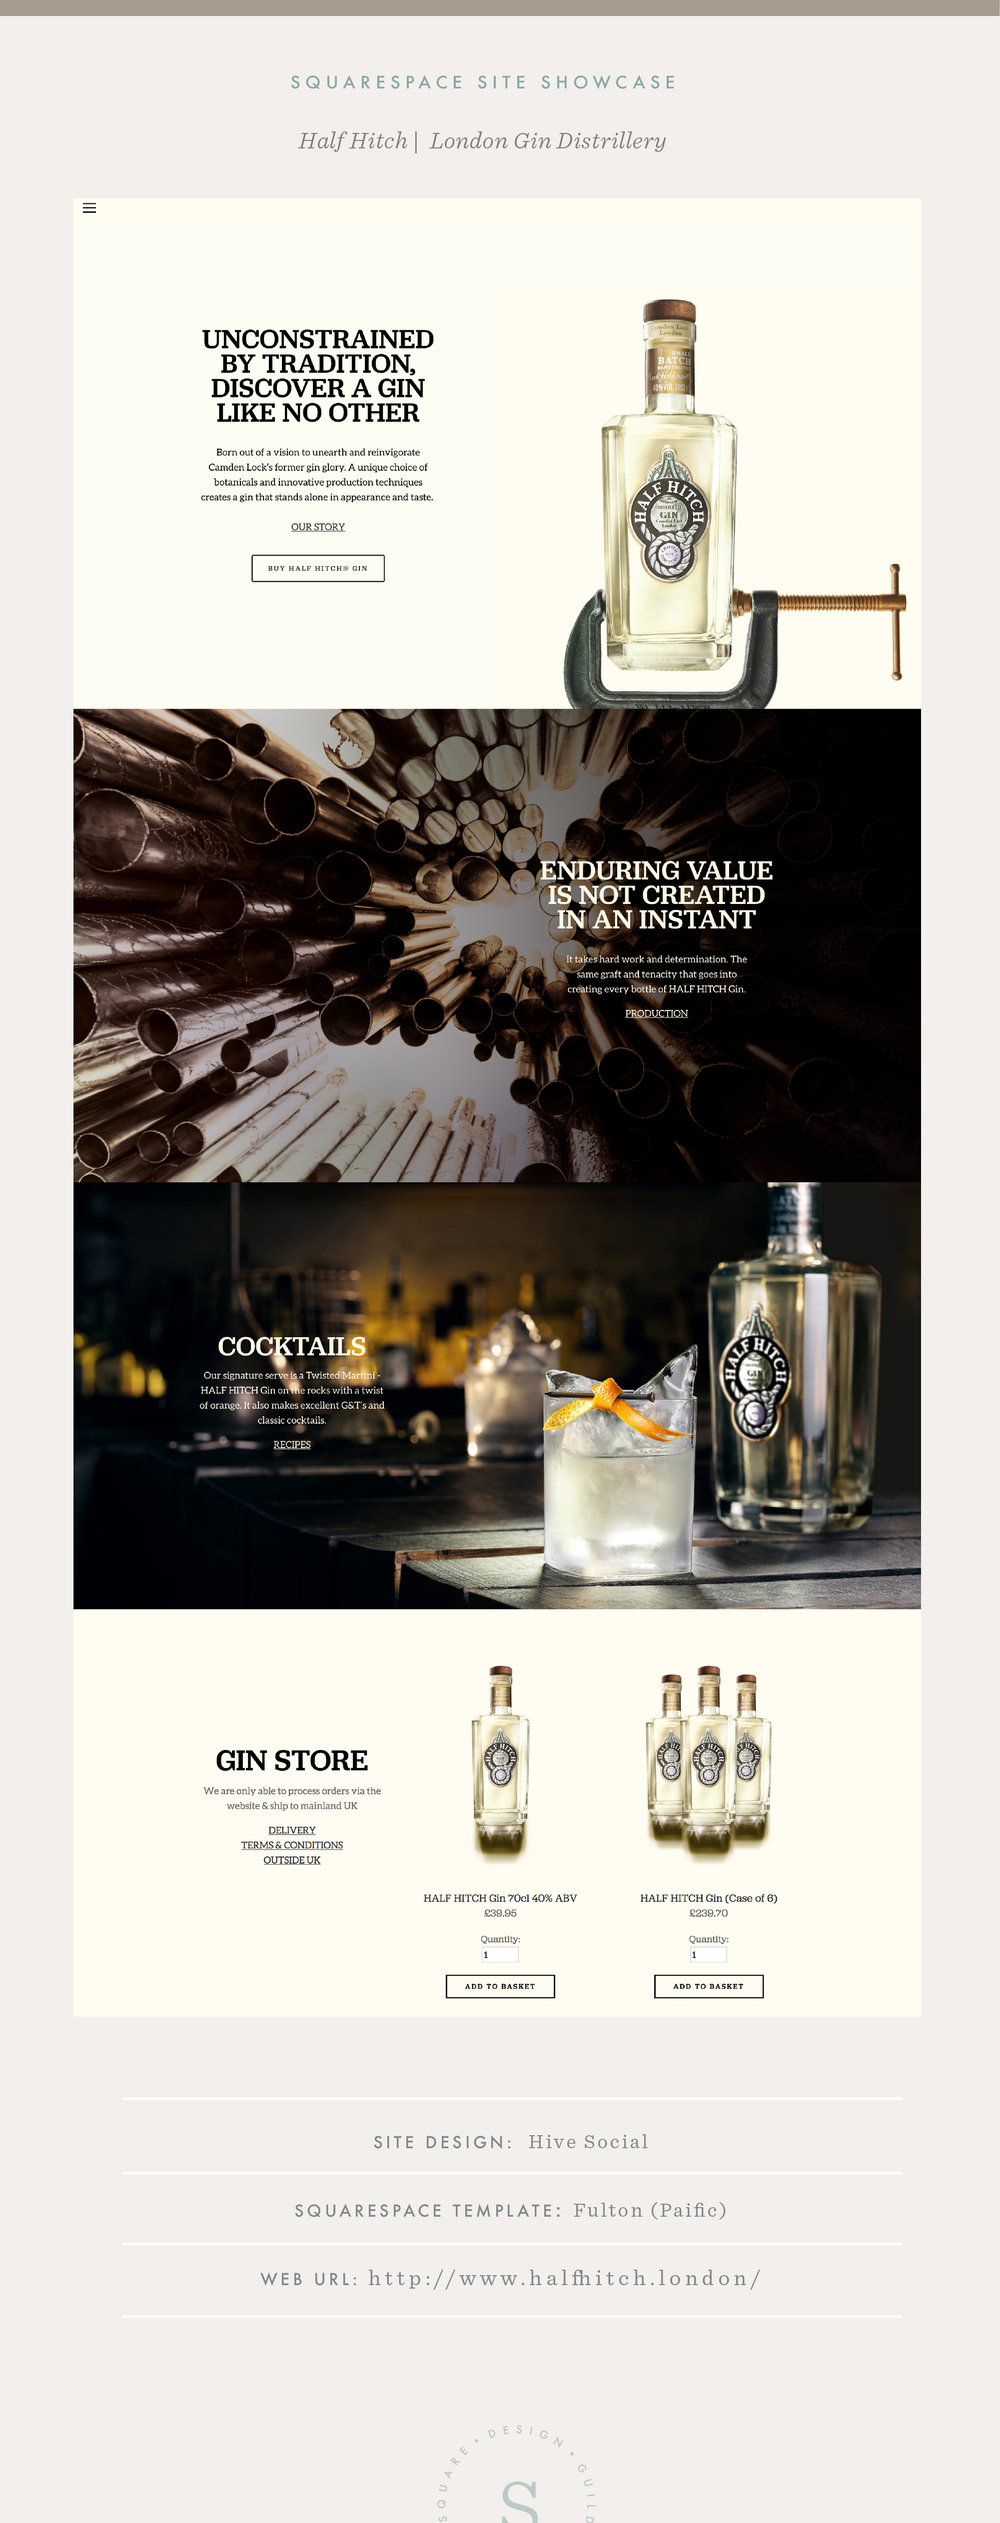 Squarespace Site Showcase | Half Hitch Gin Distillery by Hive Social | Fulton Template